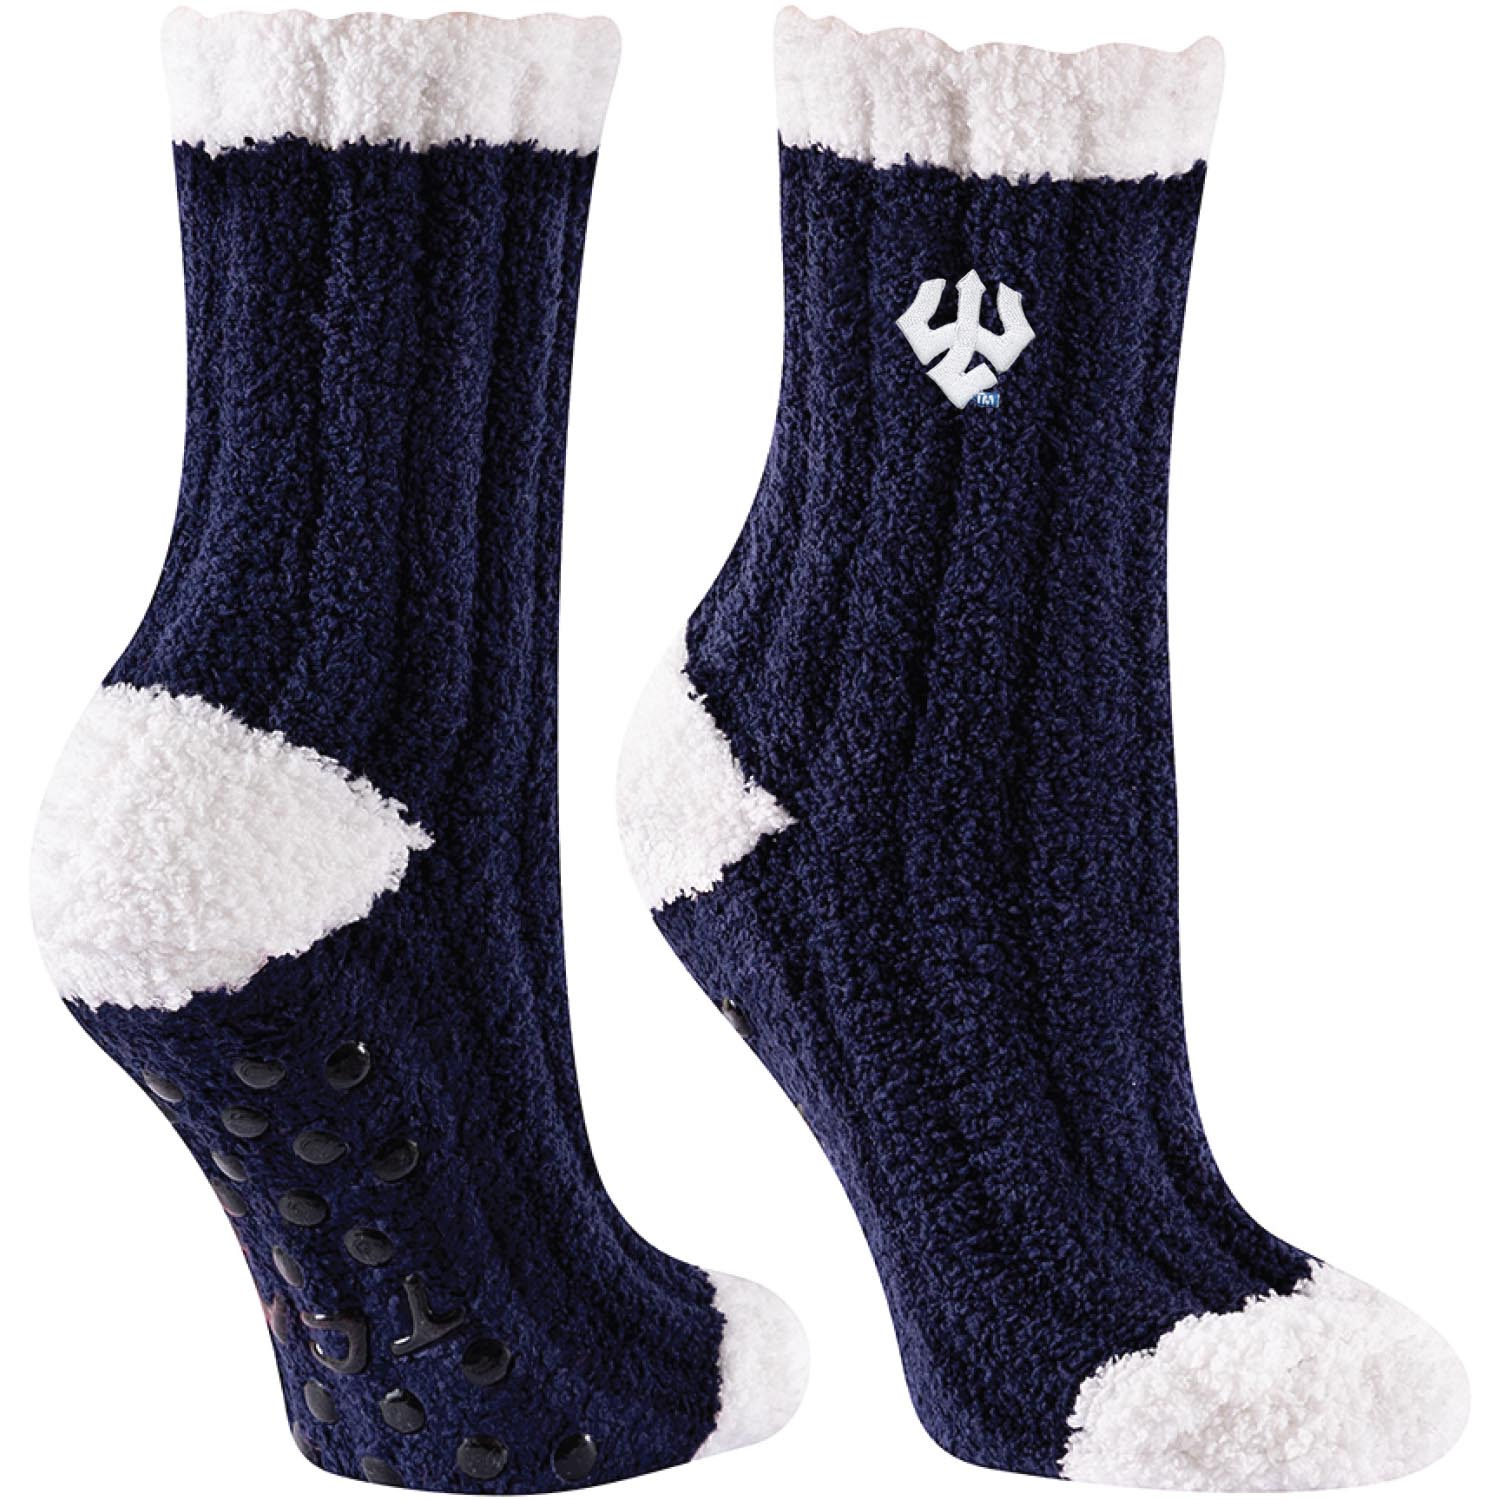 Image For Fuzzy Socks, Royal or Navy